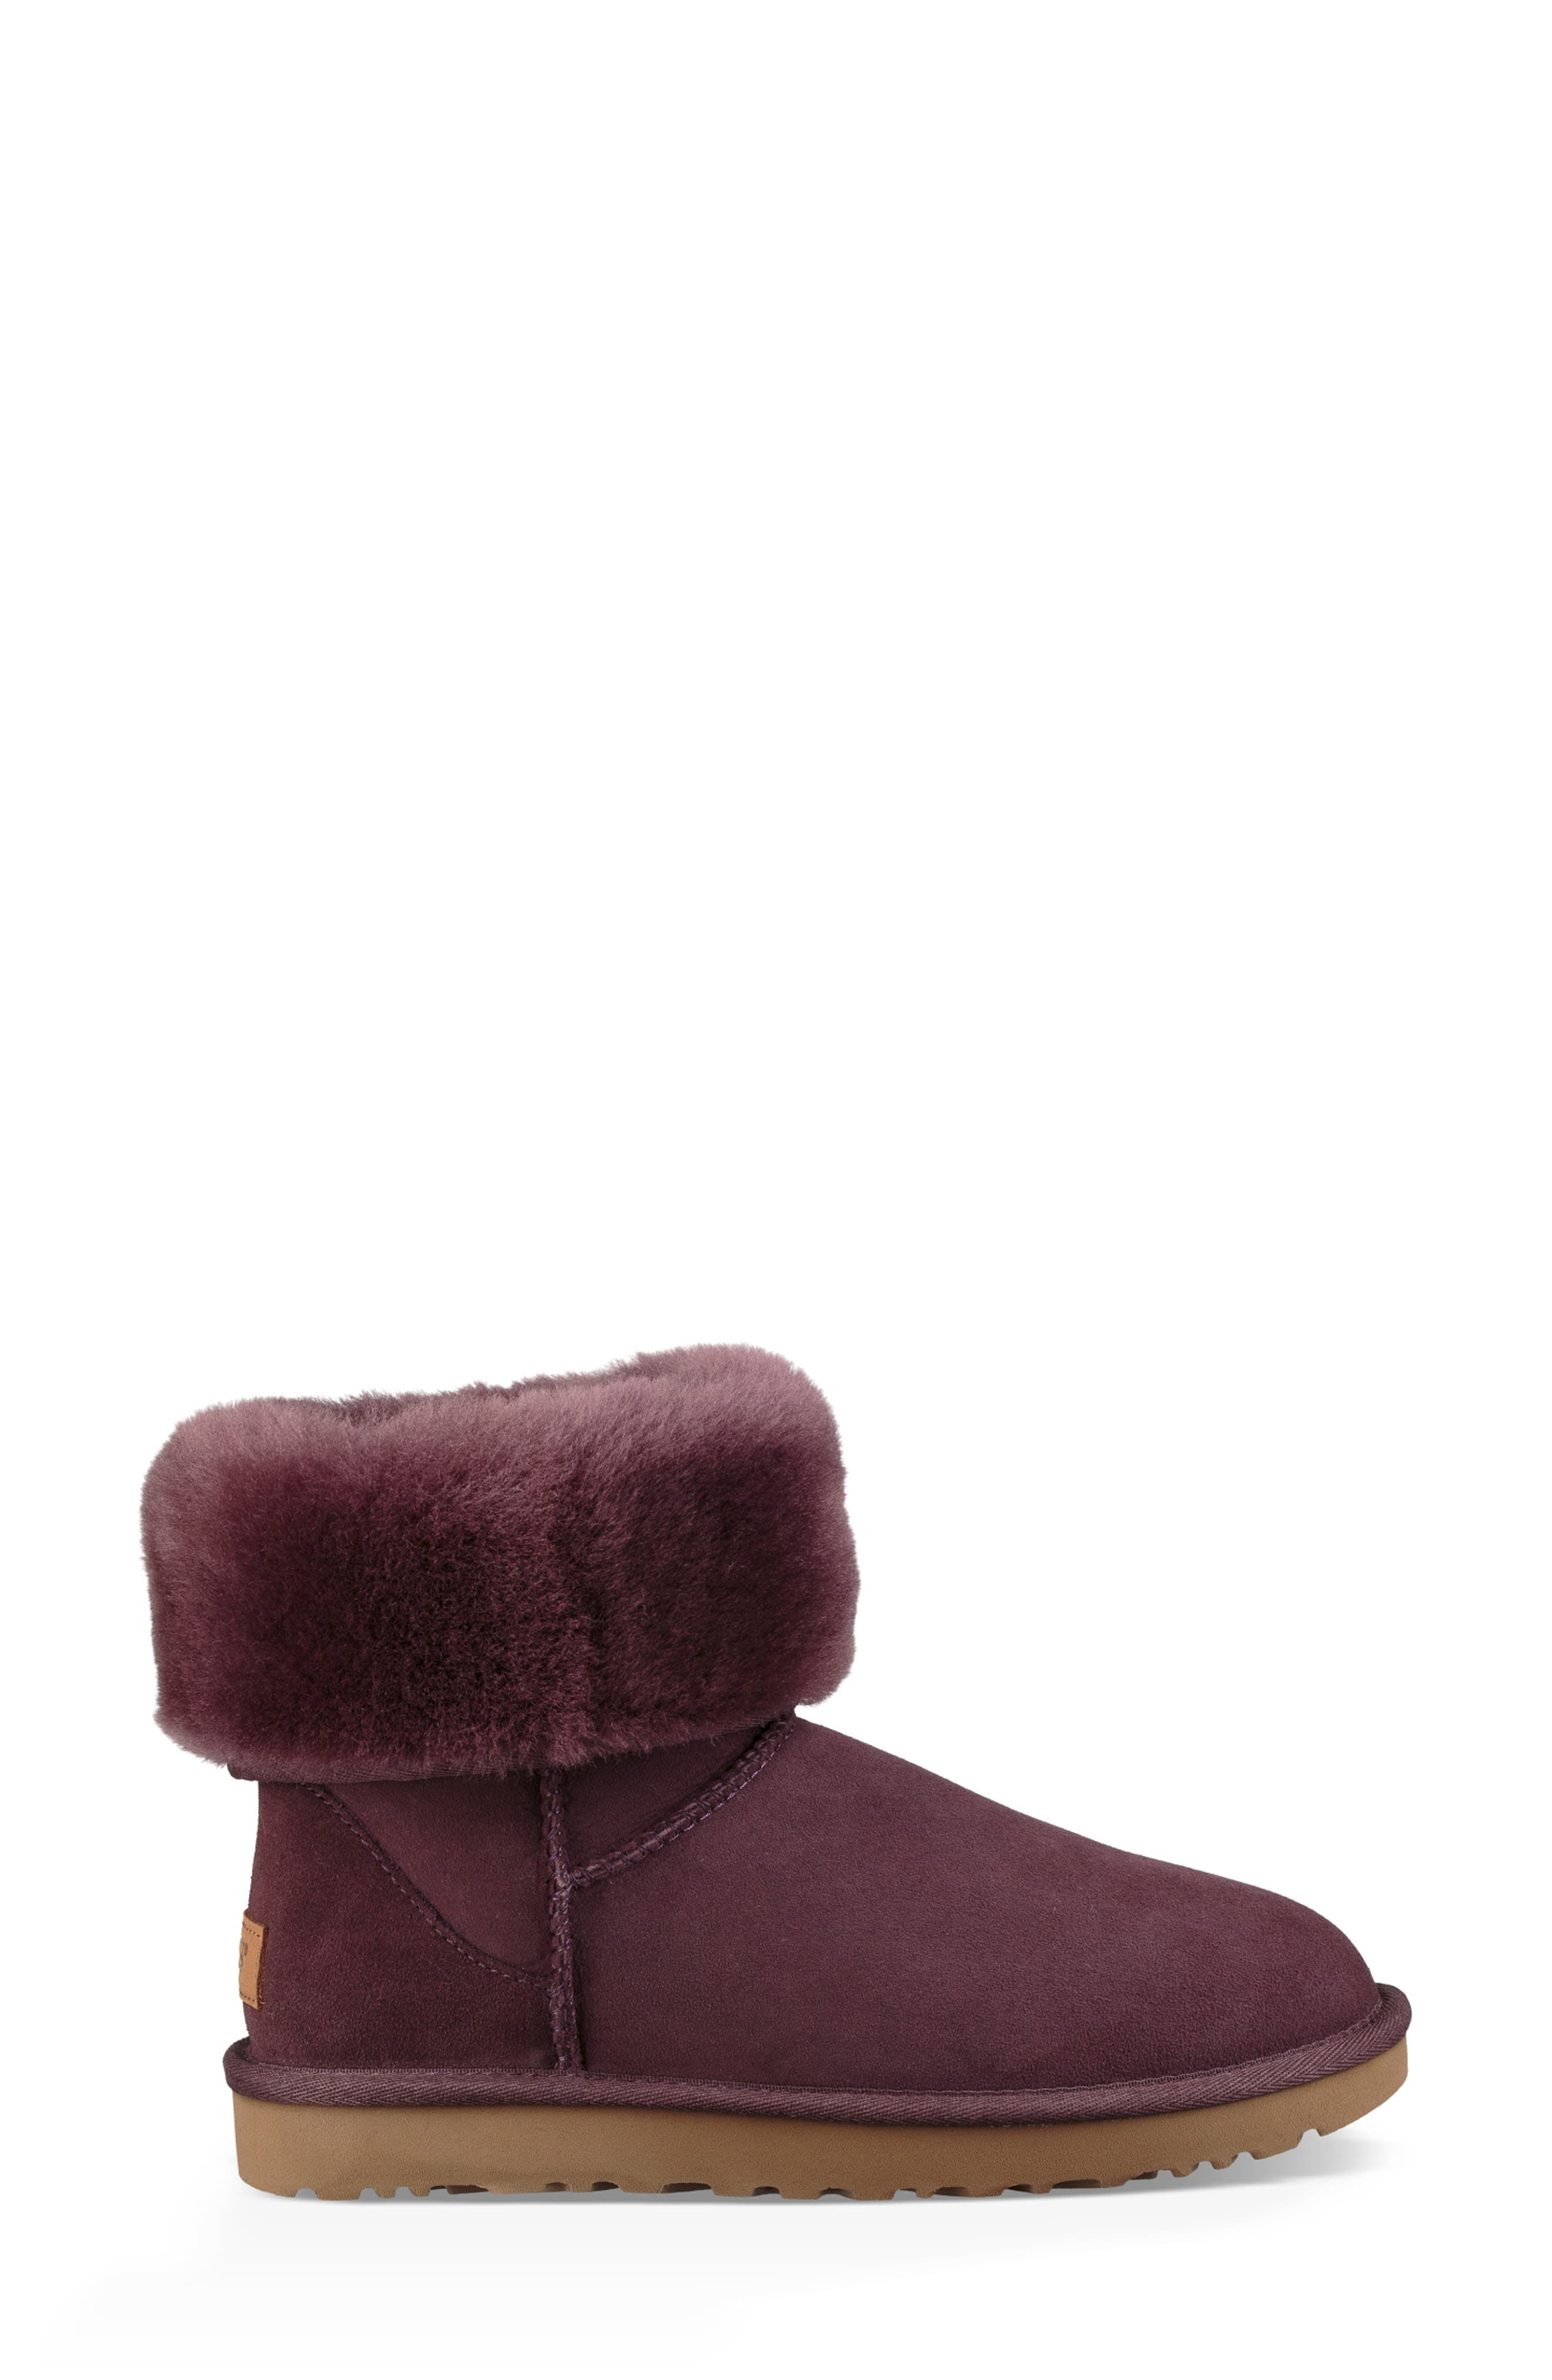 'Classic II' Genuine Shearling Lined Short Boot,                             Alternate thumbnail 5, color,                             Port